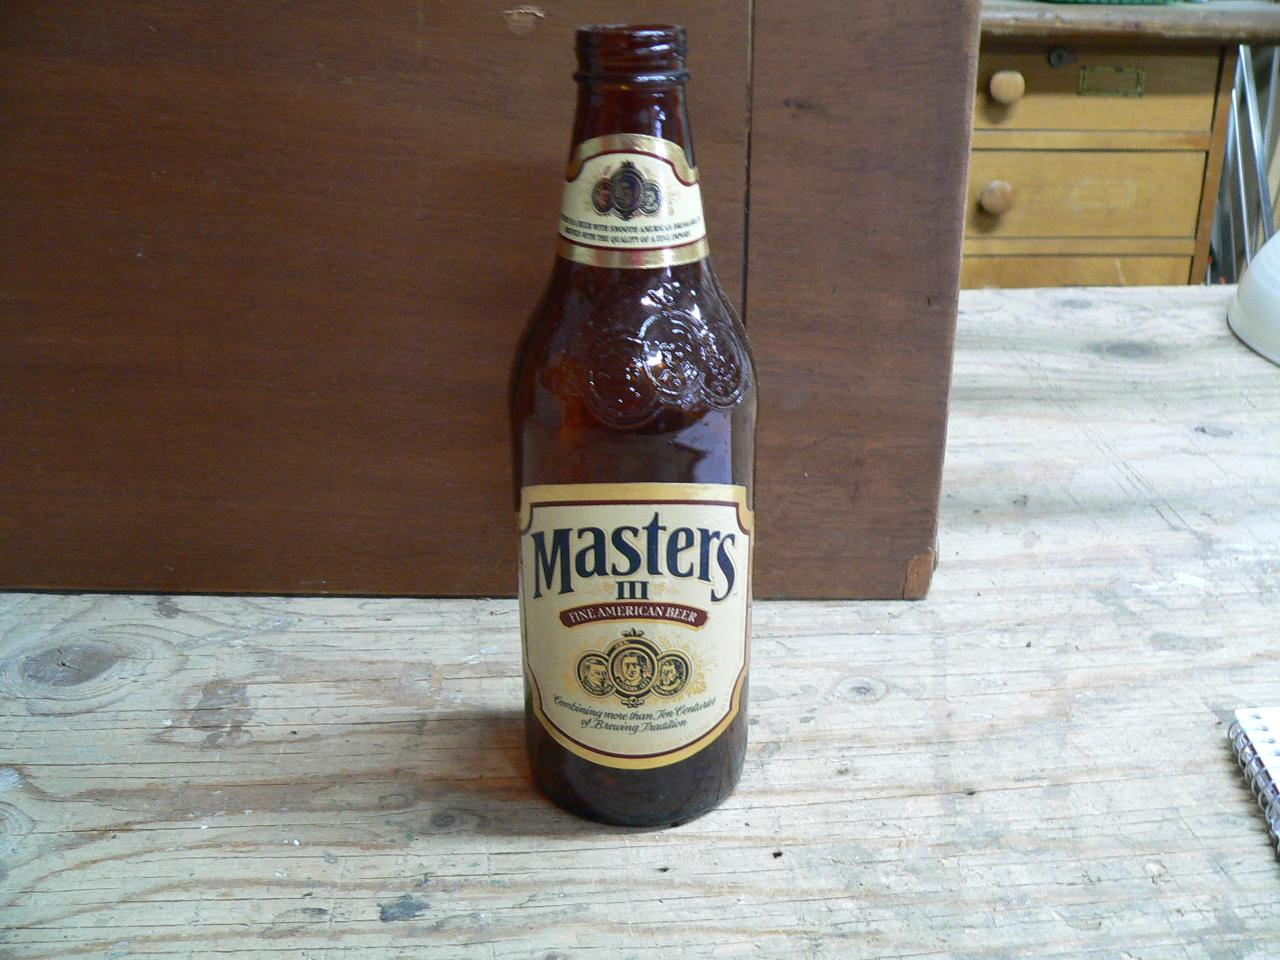 Bouteille master 111 fine american beer # 4556.16